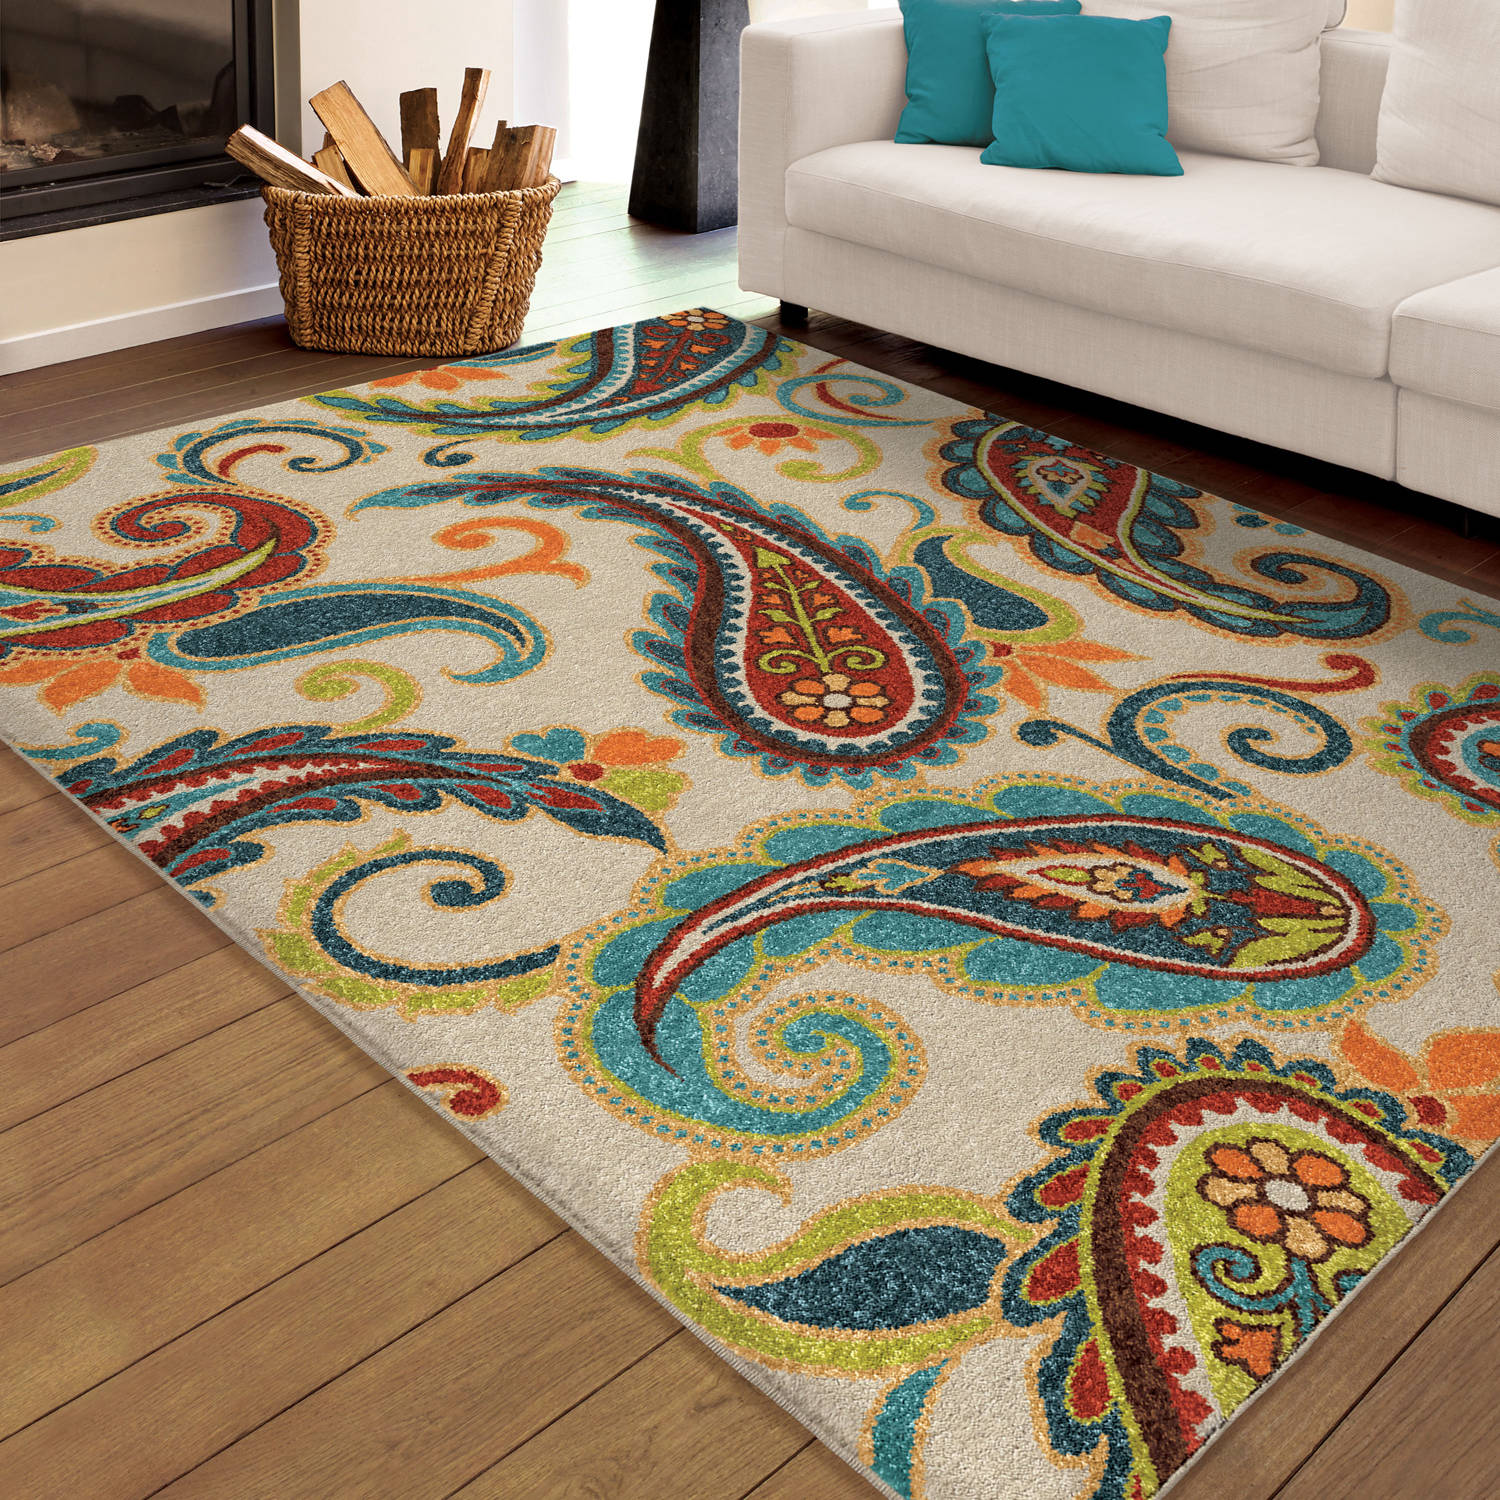 Orian Rugs Indoor/Outdoor Paisley Wyndham Multi Colored Area Rug